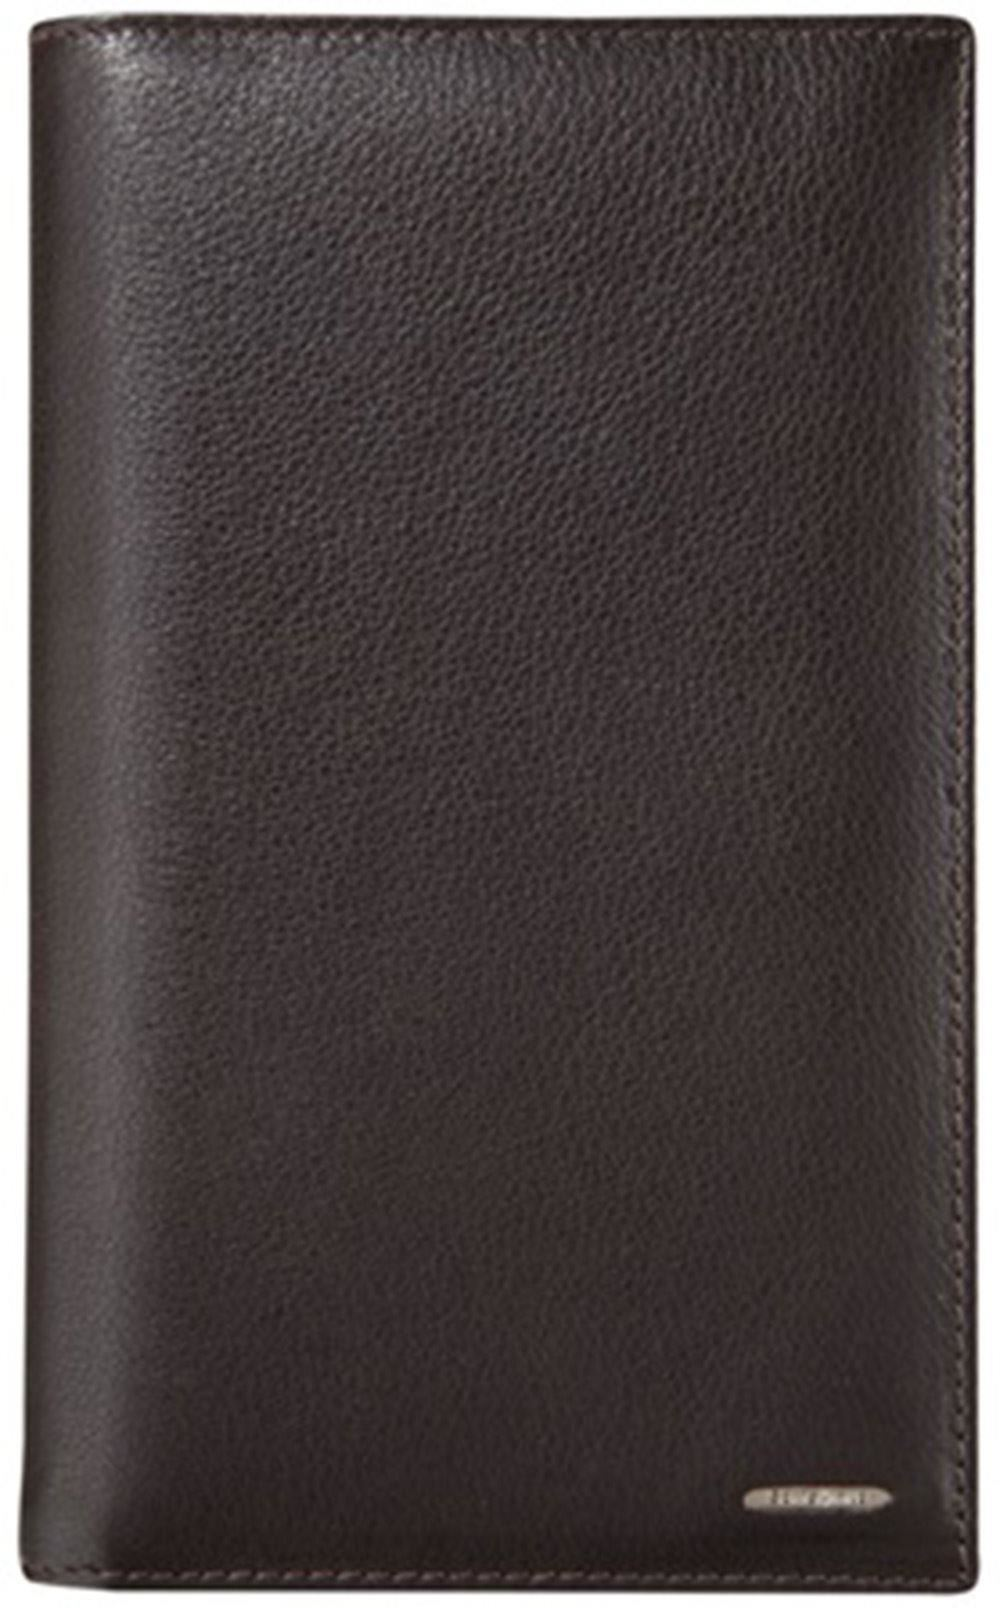 SAMSONITE NYX II MEDIUM BROWN COWHIDE LEATHER BUSINESS CARD HOLDER ...